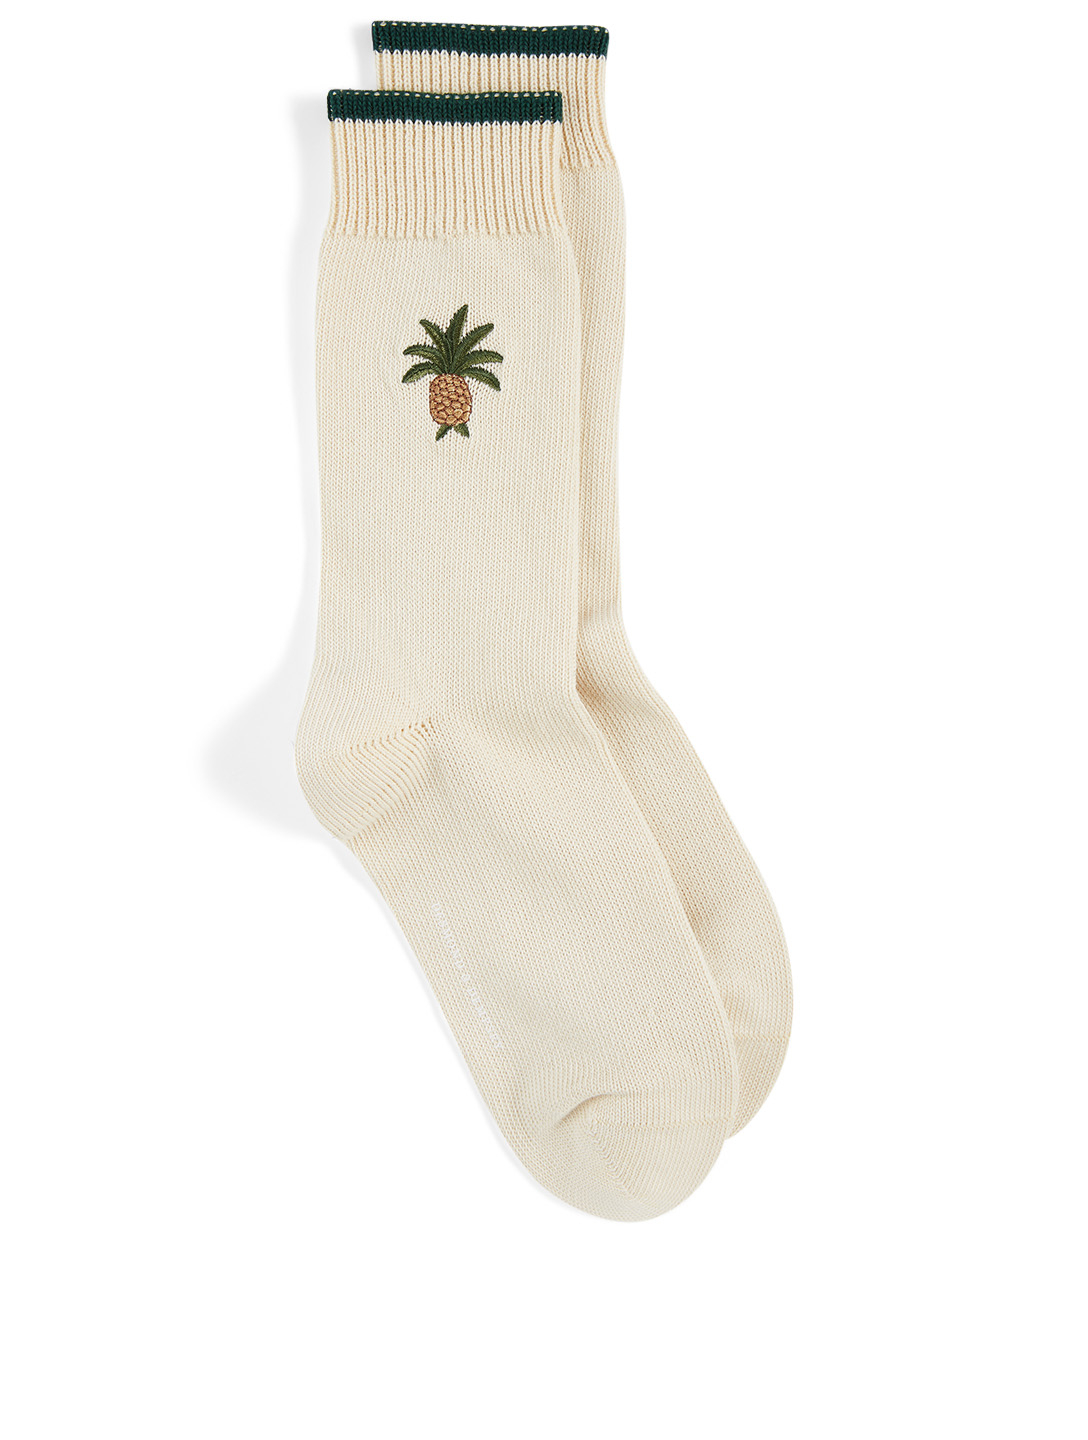 DESMOND & DEMPSEY Pineapple Embroidered Cotton Socks H Project Neutral